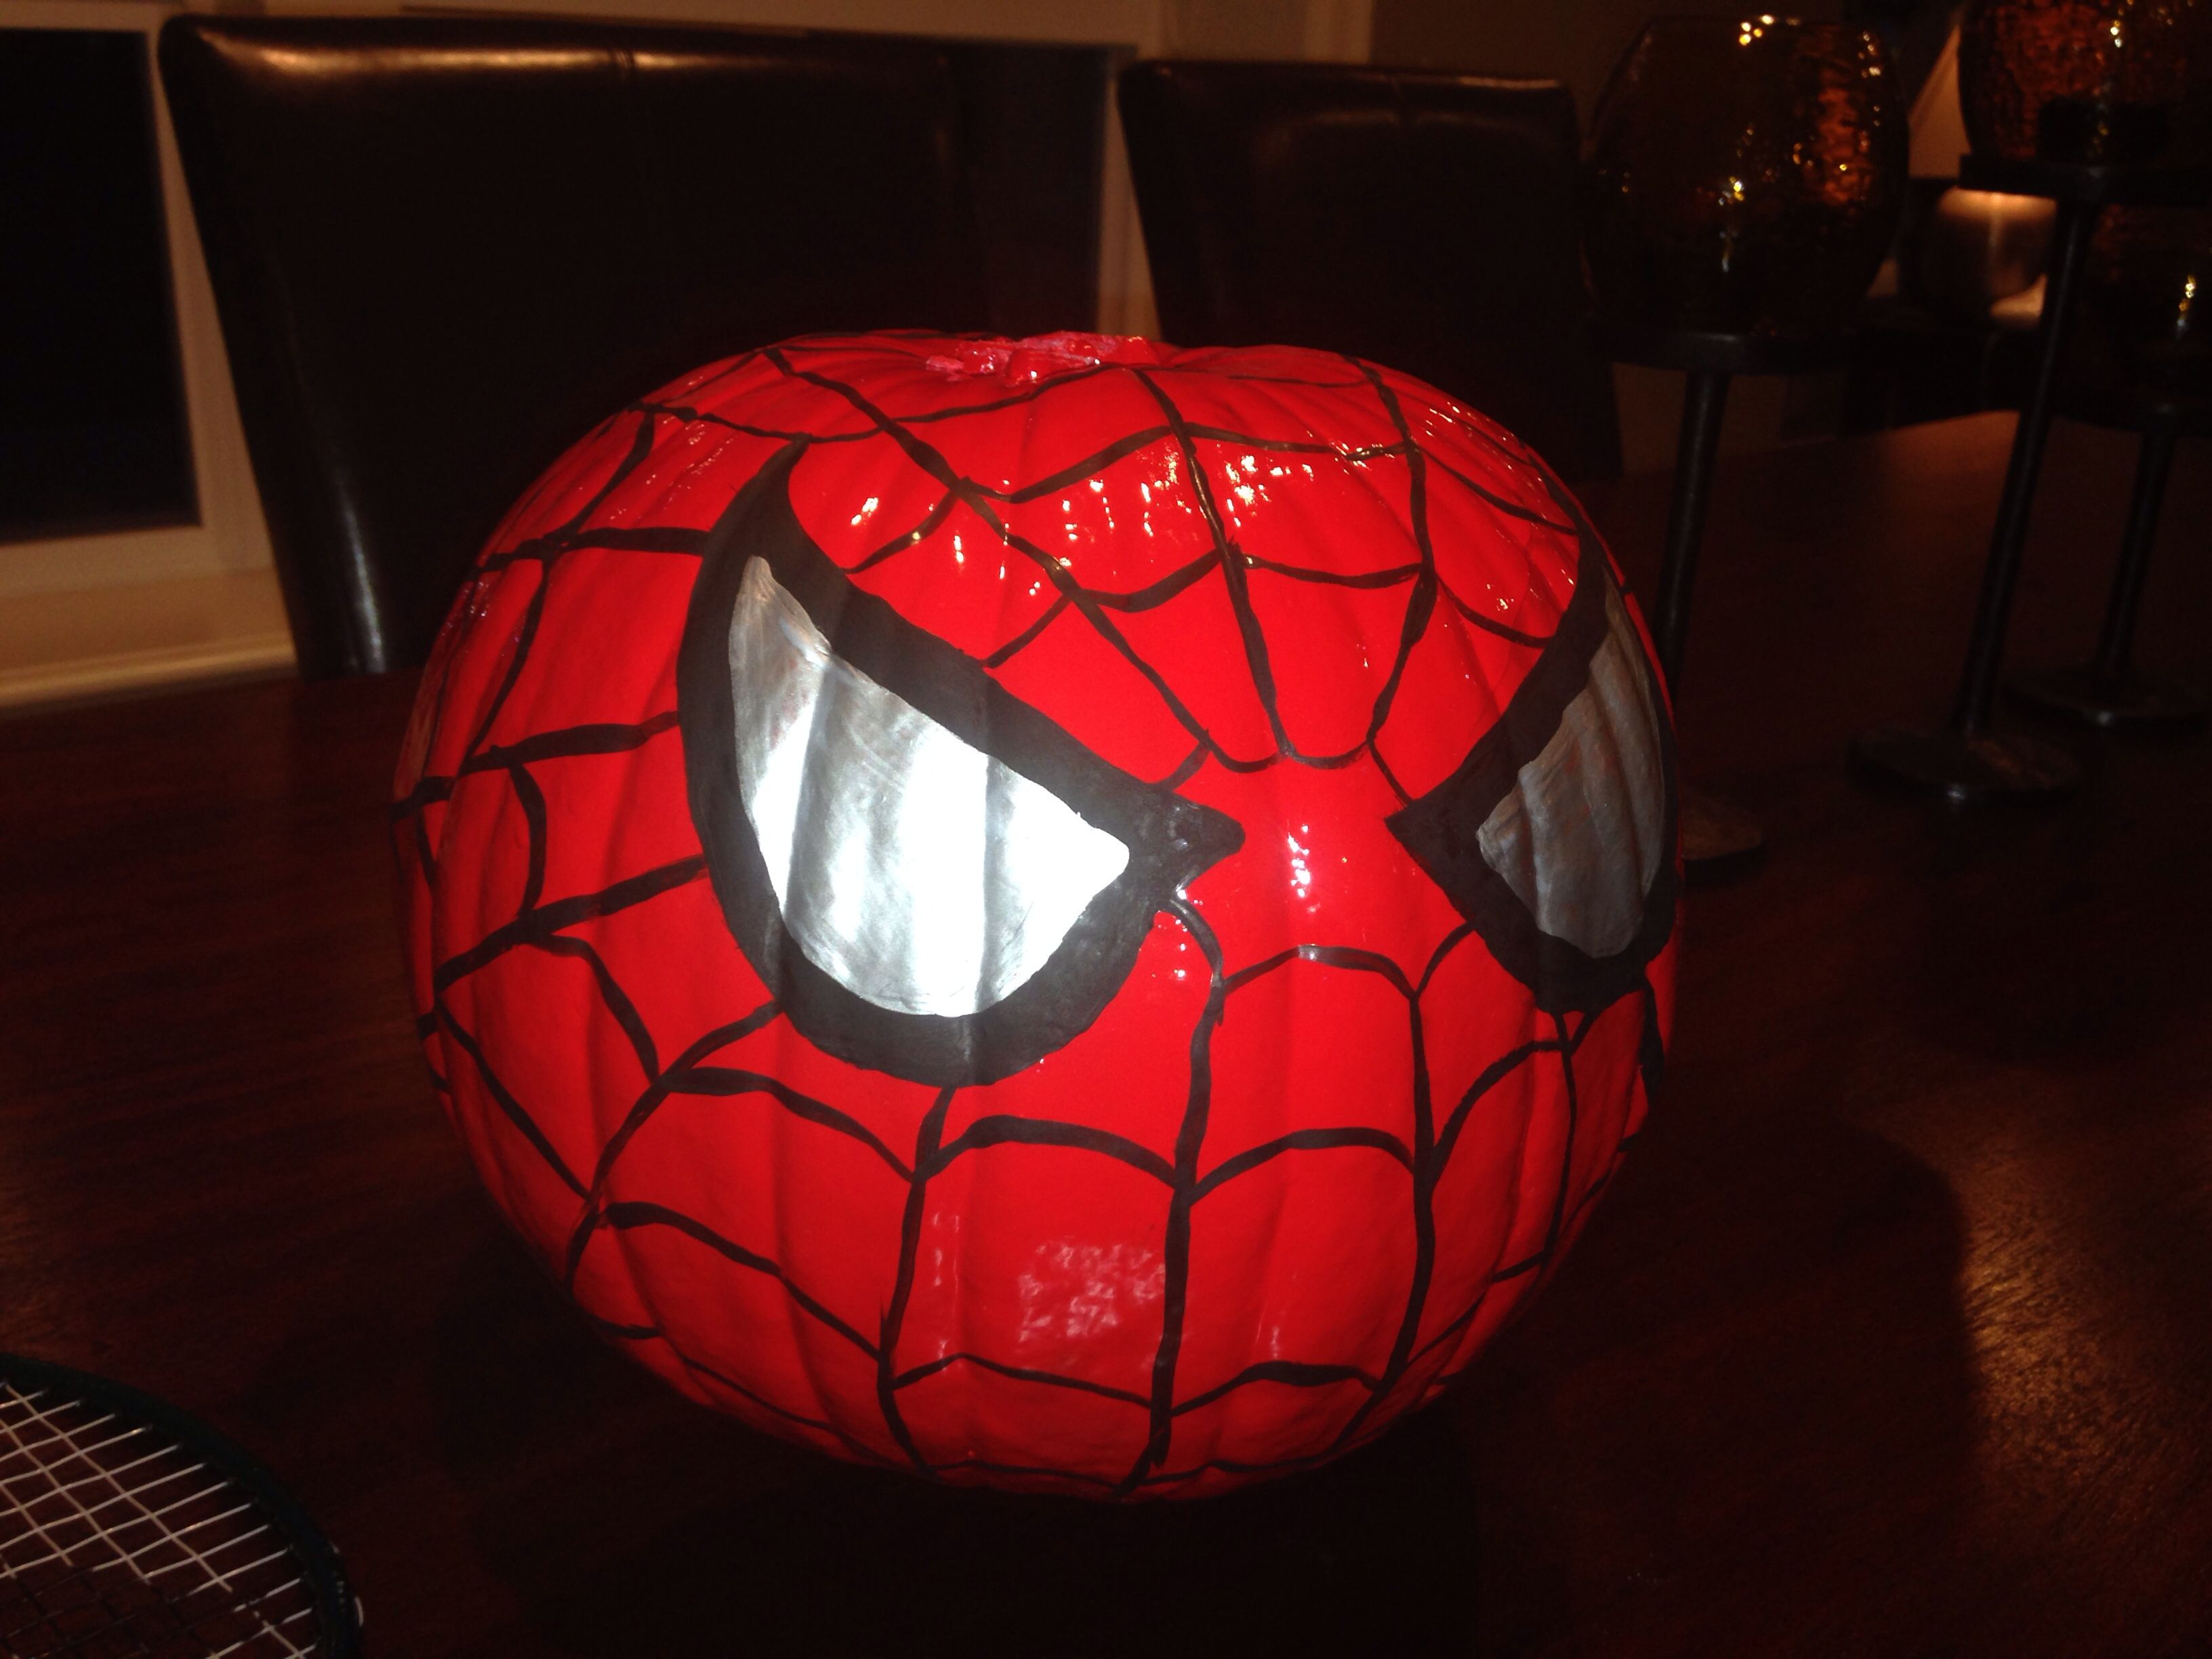 Best 20+ Spiderman pumpkin ideas on Pinterest | Halloween pumpkin ...